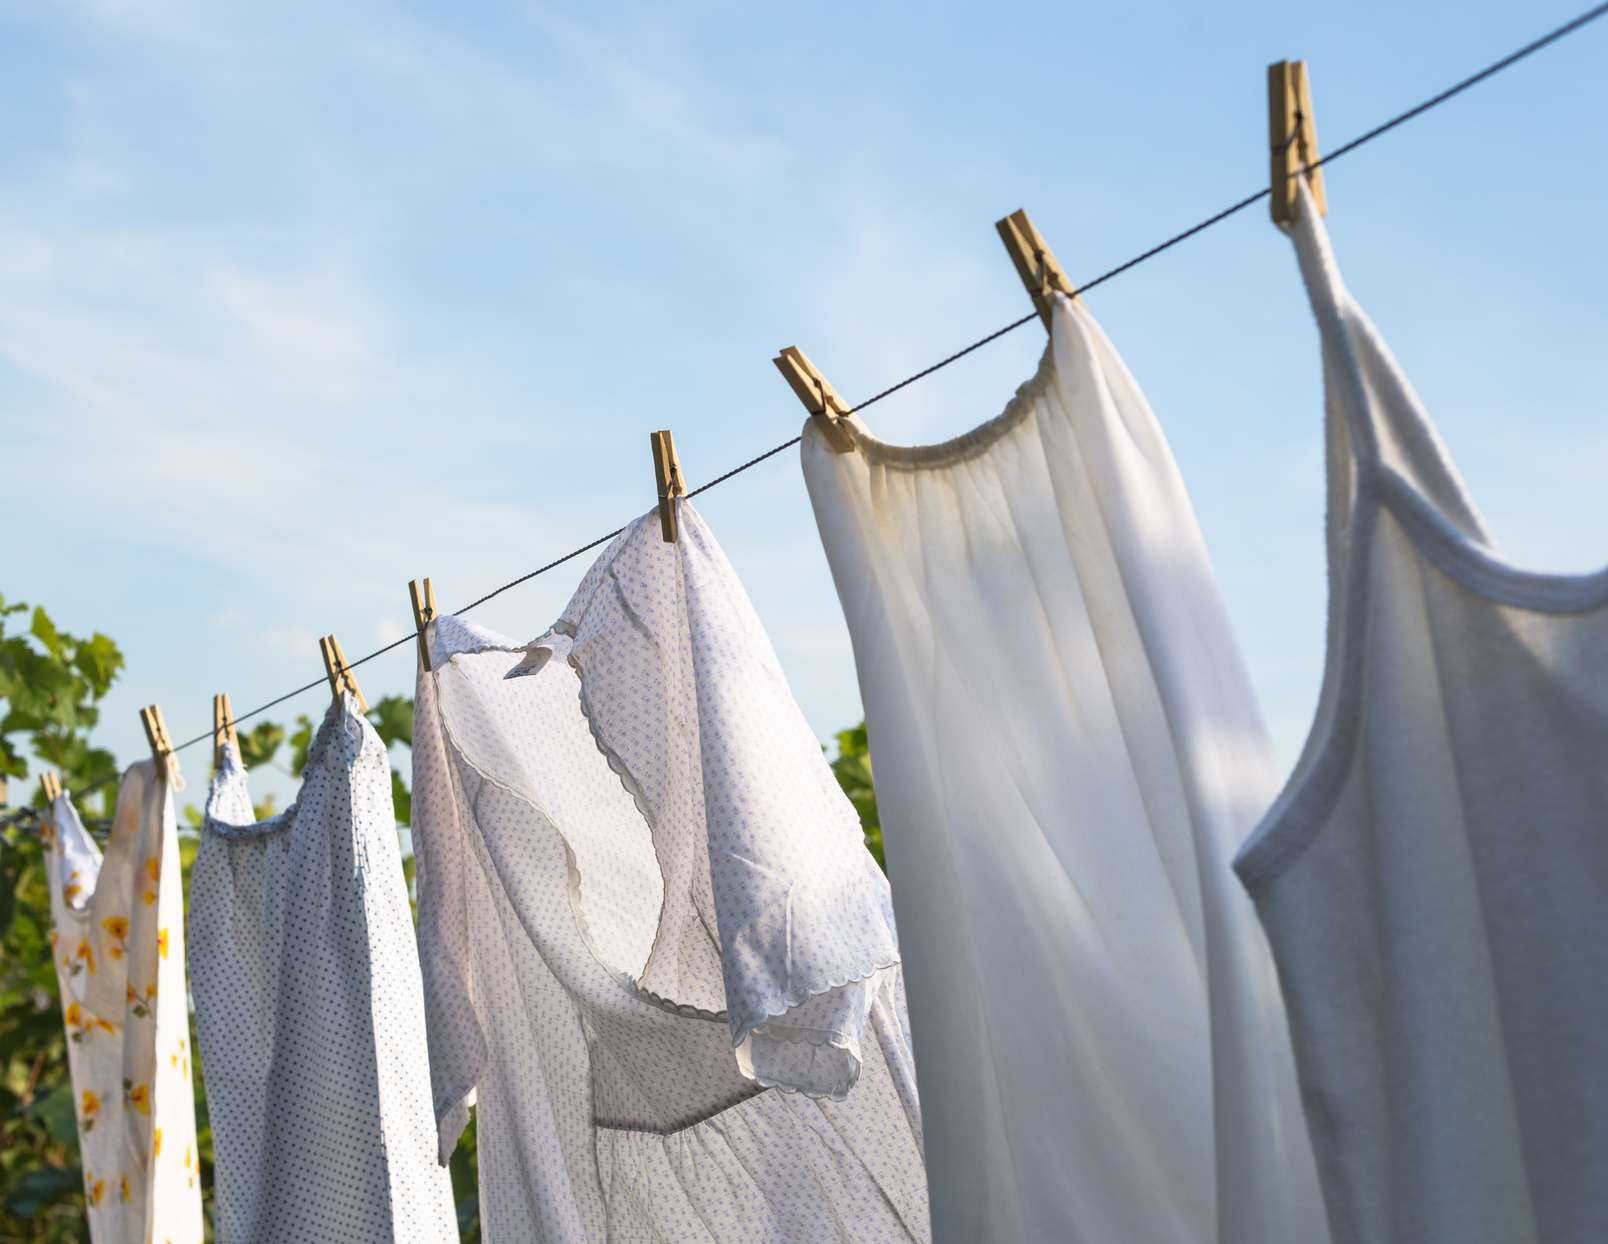 white clothing on a clothesline